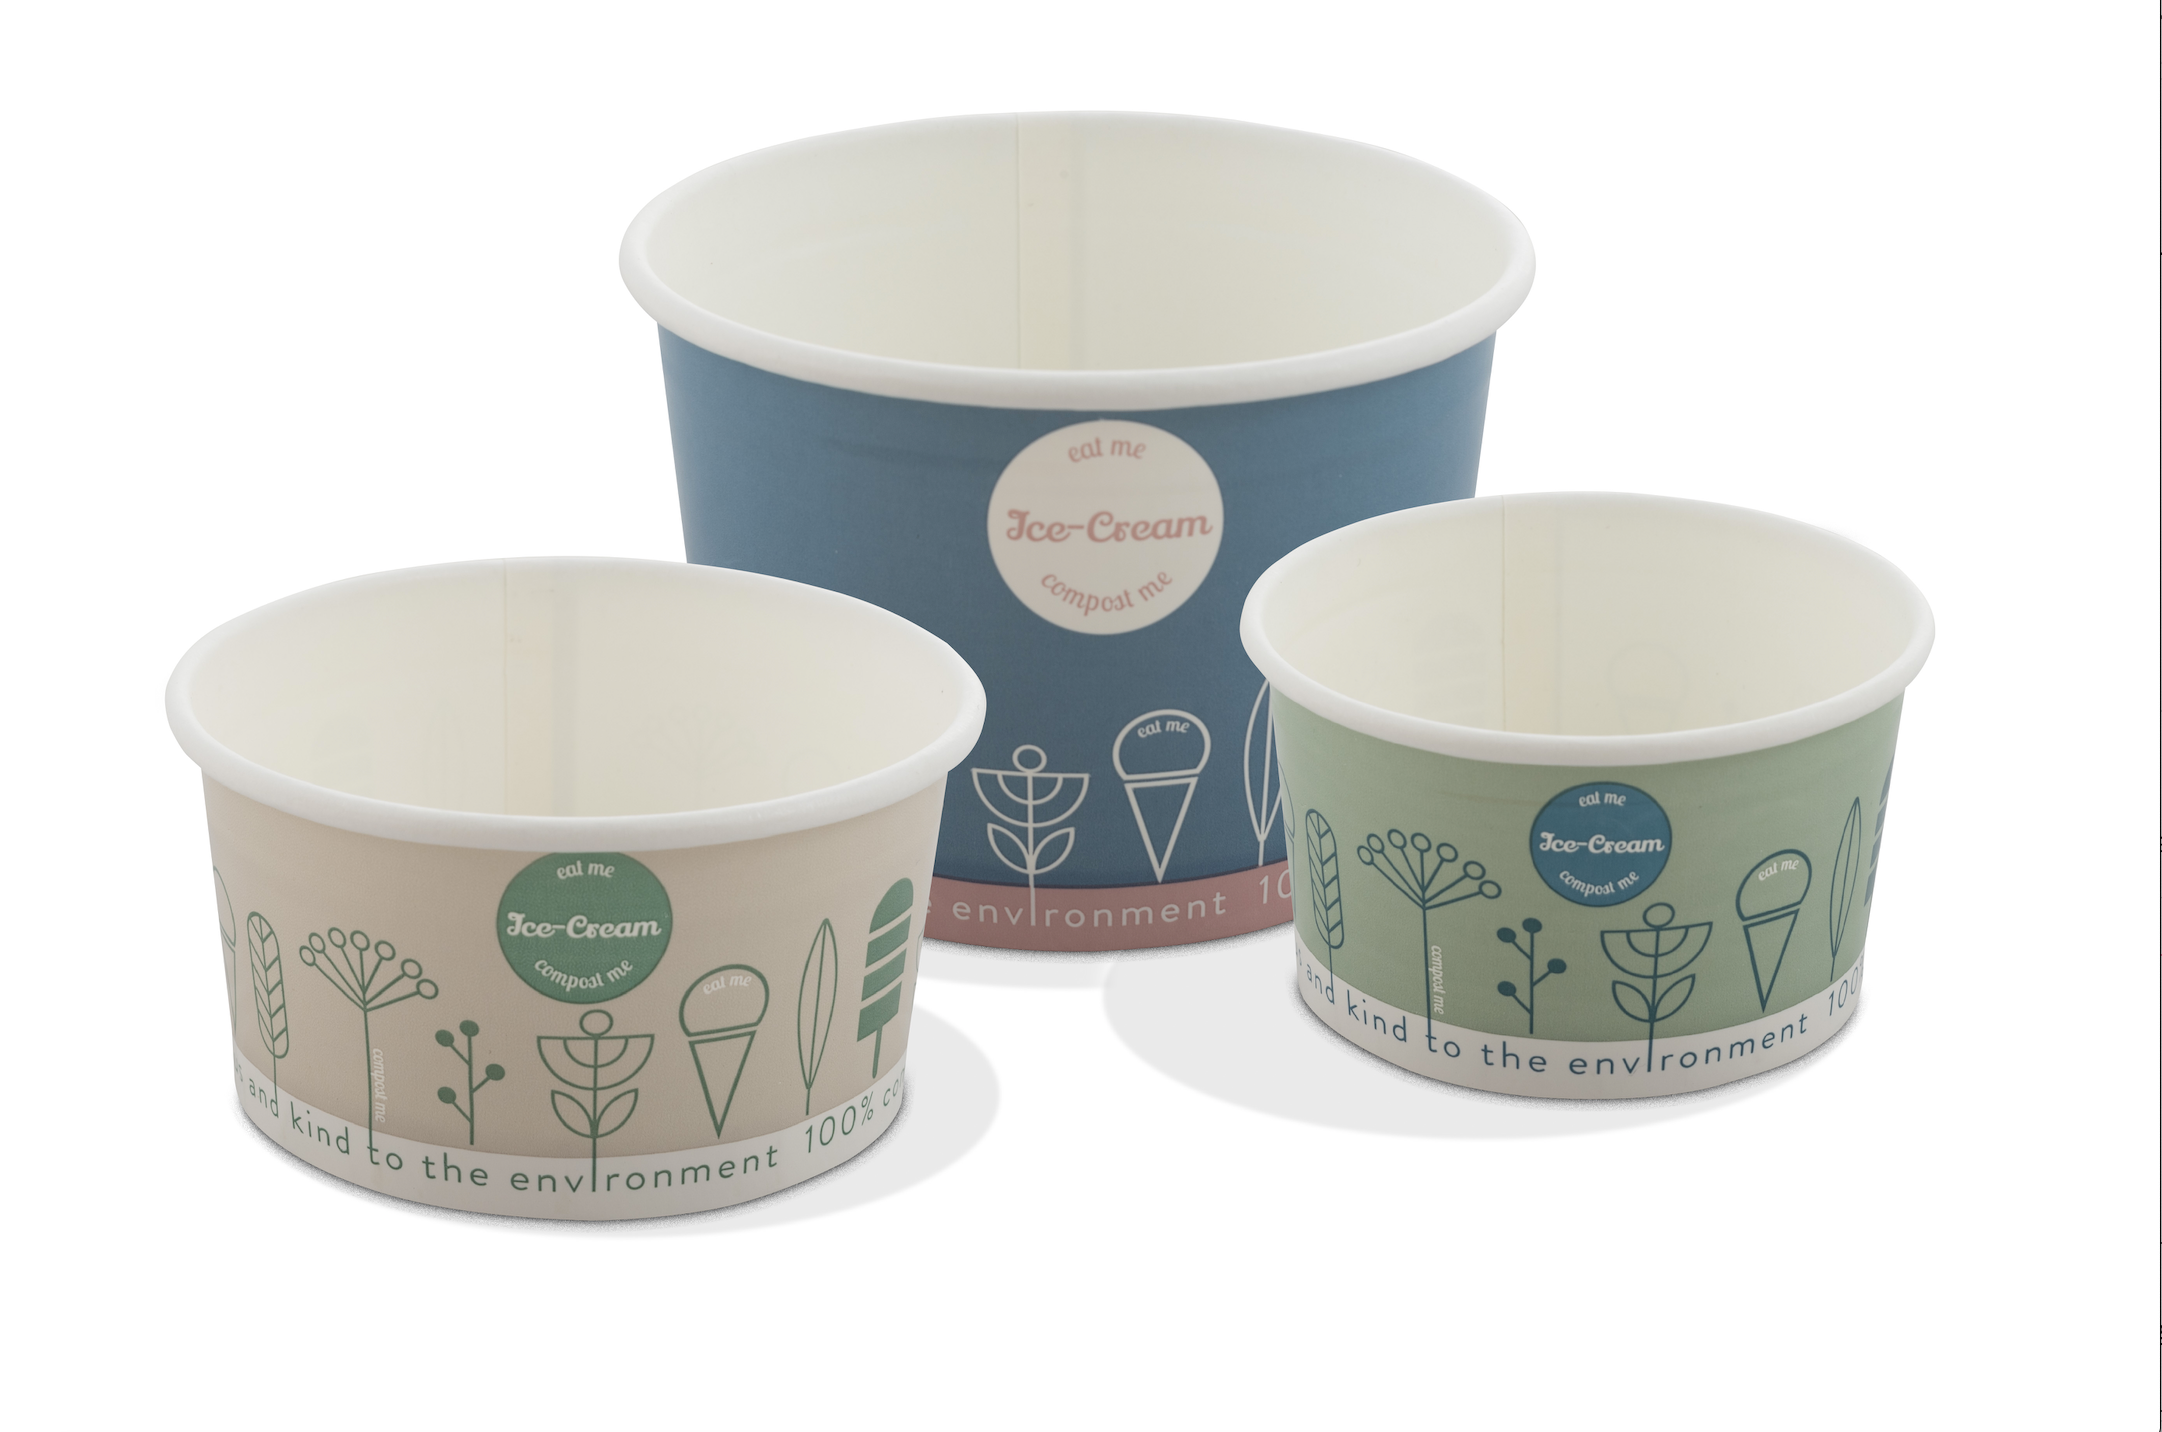 Compostable Ice Cream Packaging